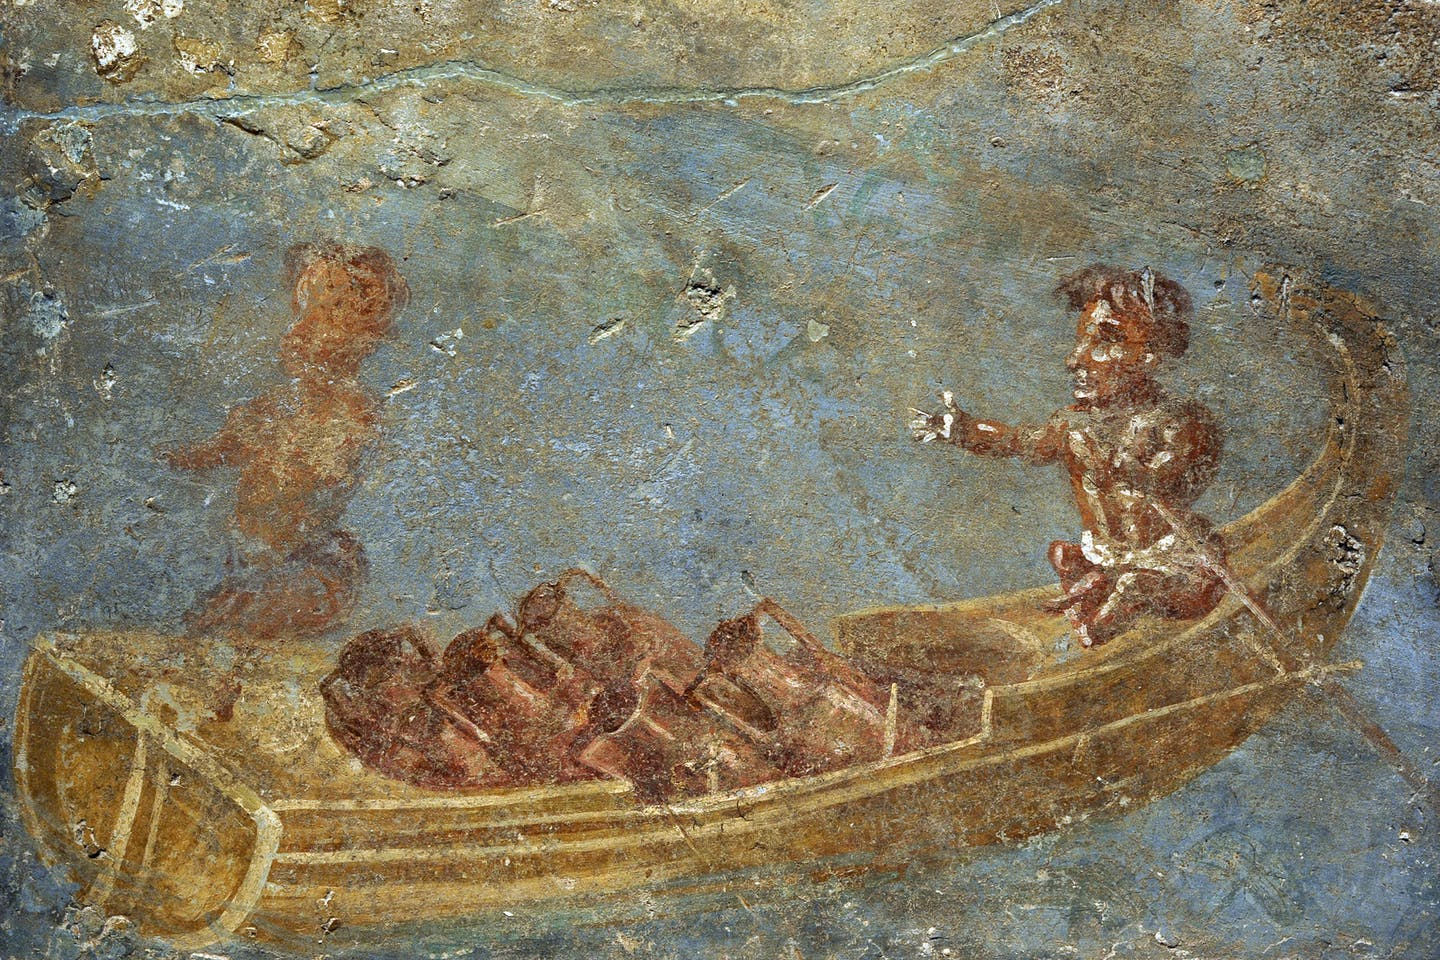 A Roman fresco depicts a Nilotic scene with pygmies in a boat loaded with amphorae.